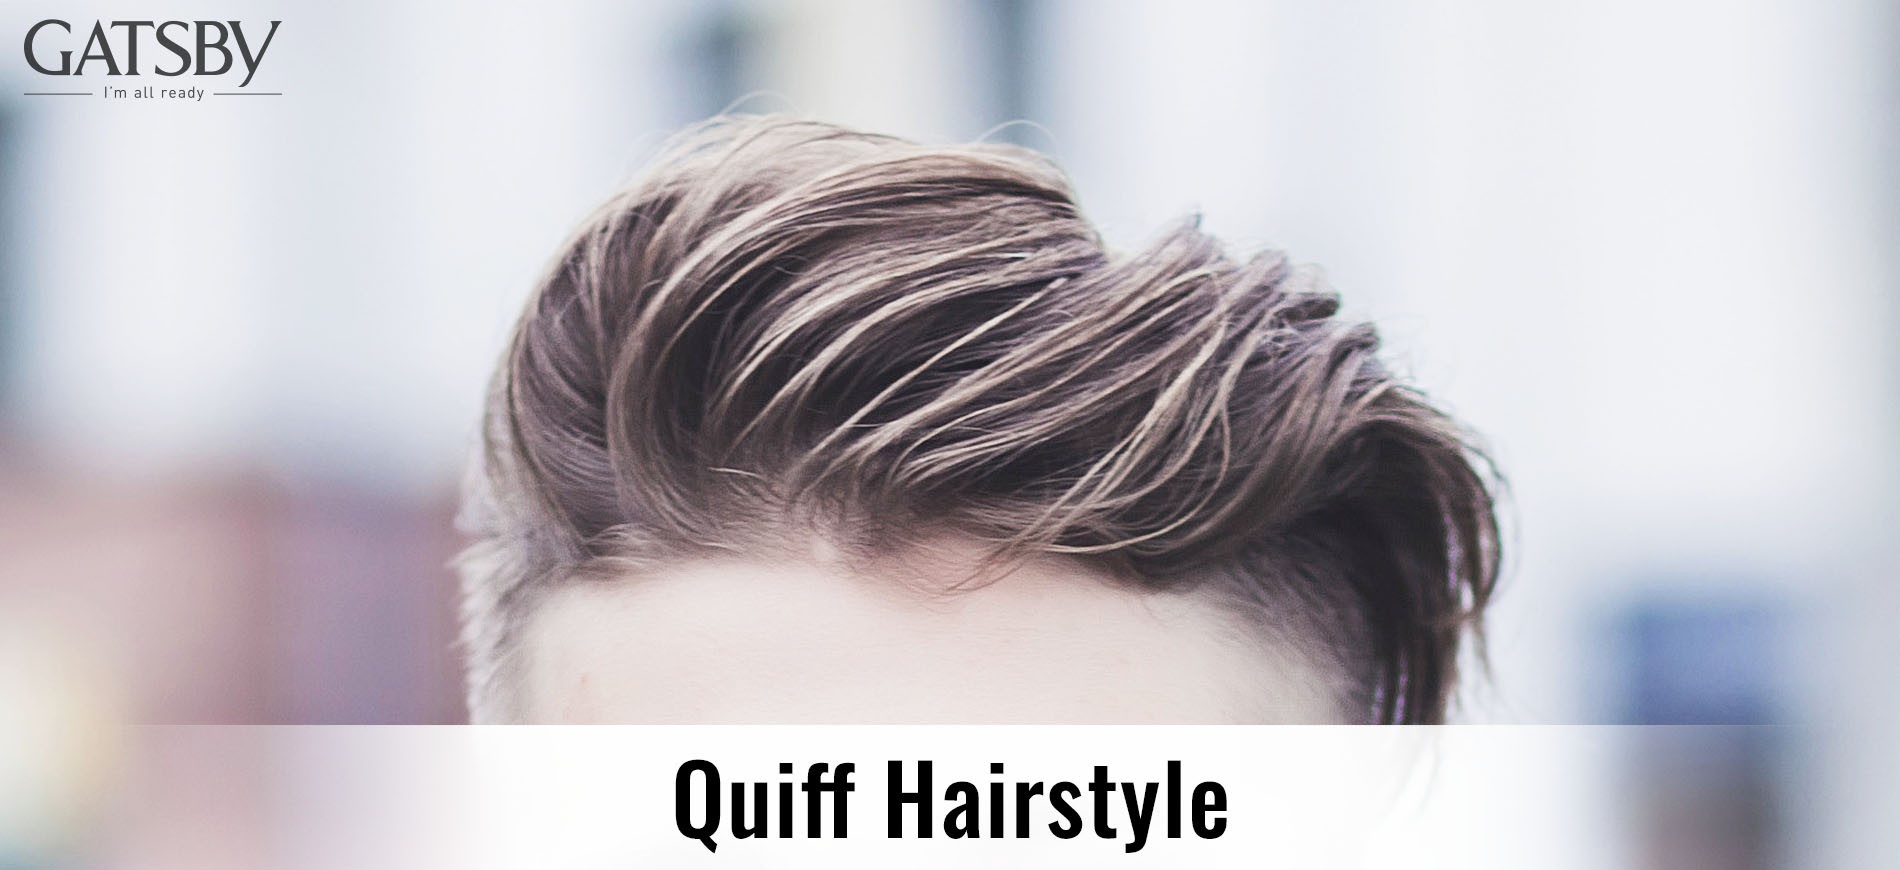 upload/assets/Quiff-thumbnail.jpg